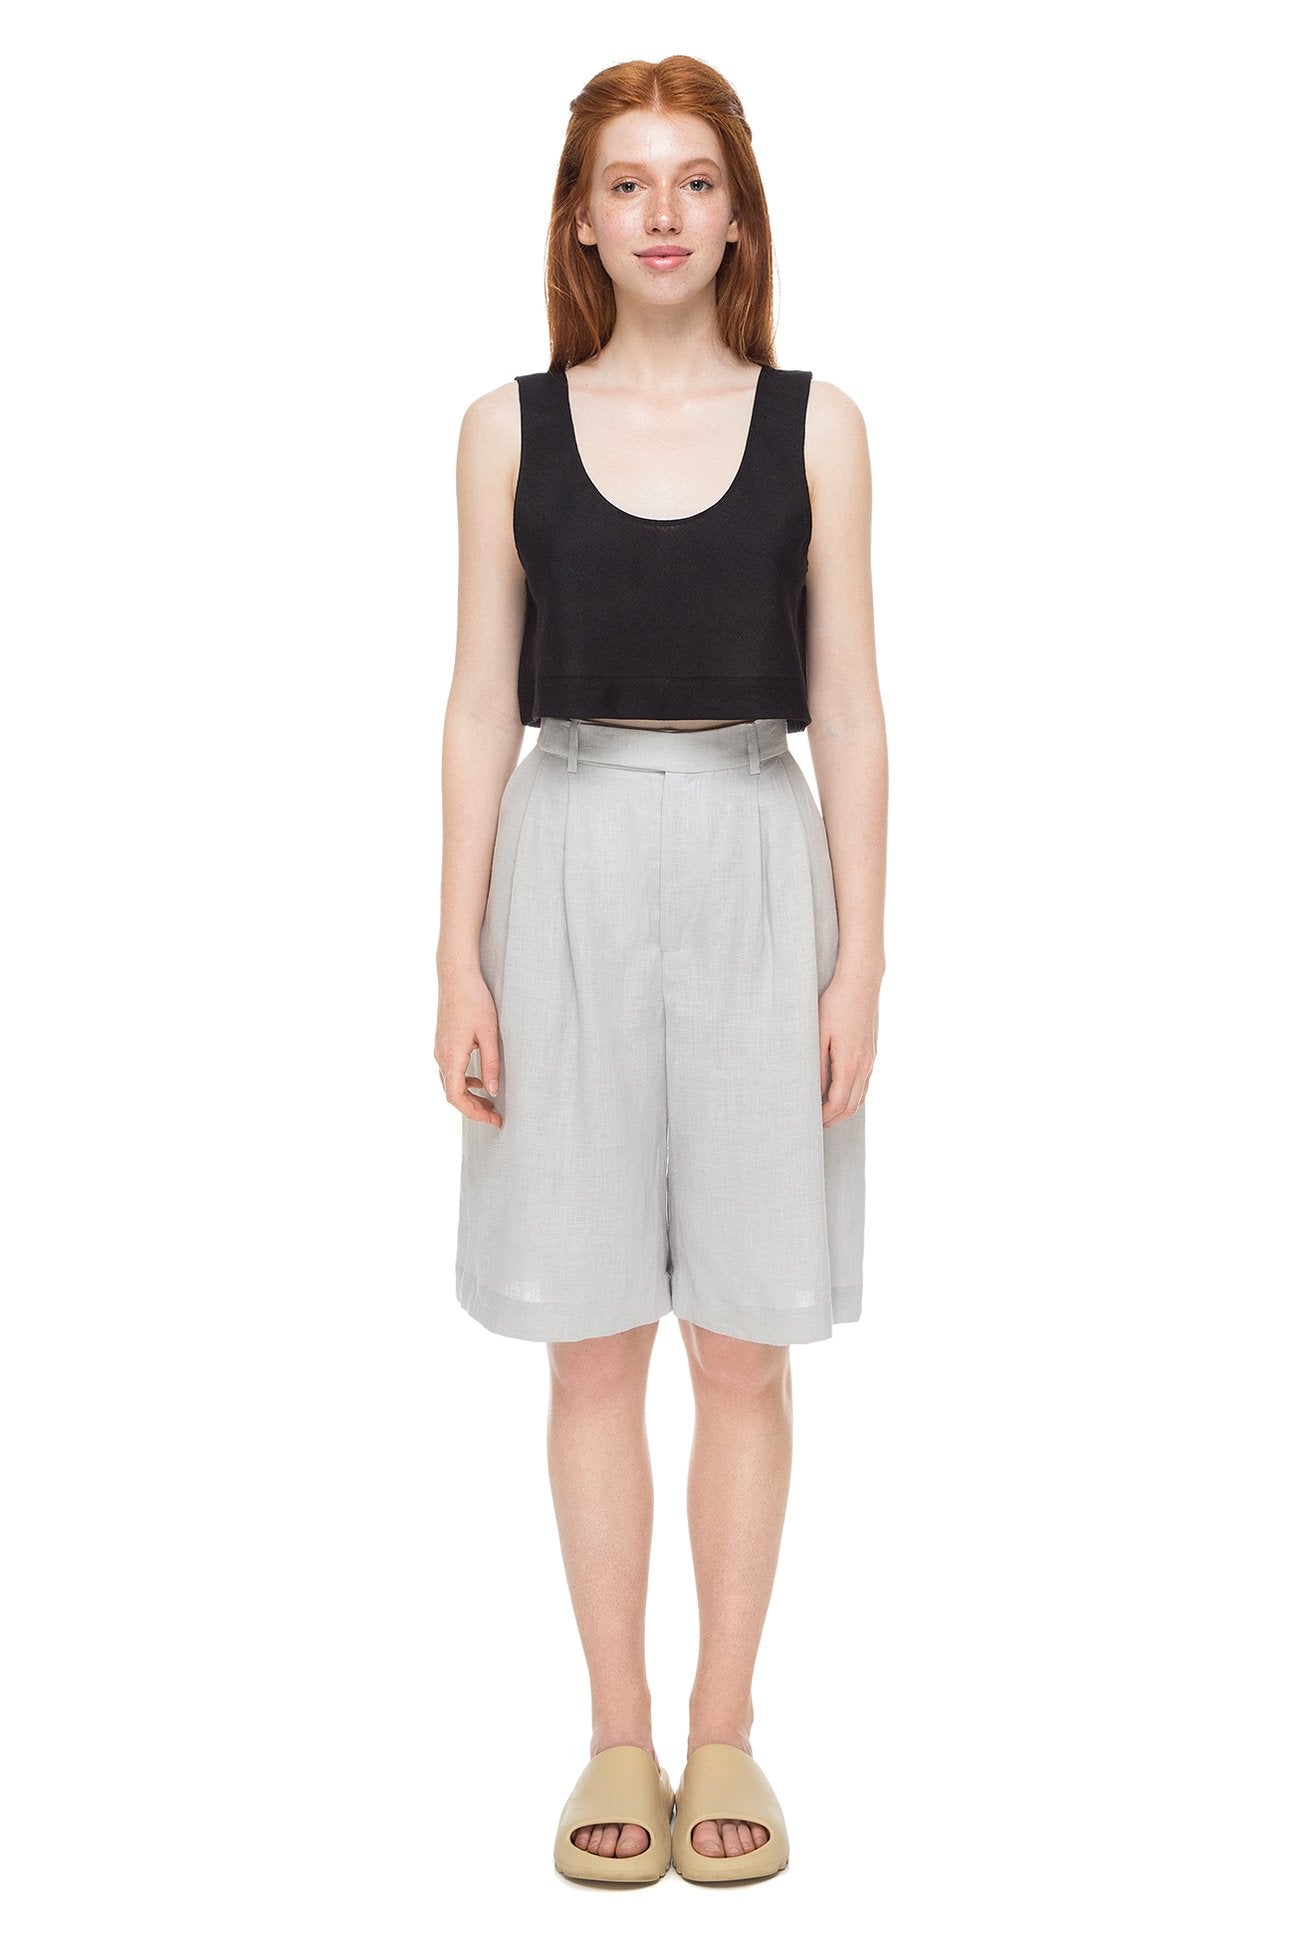 Light gray shorts with tucks